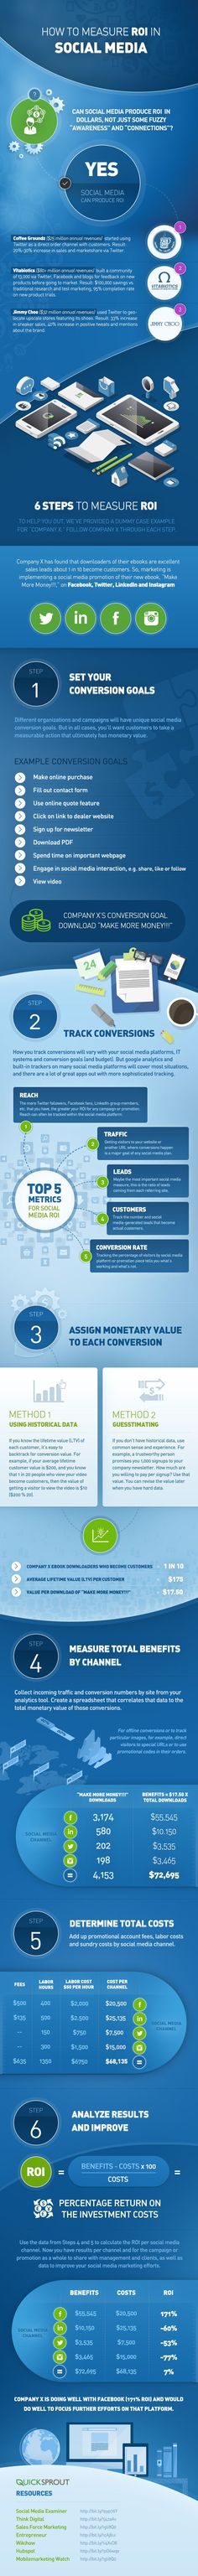 How to Measure #ROI in #SocialMedia [#infographic]